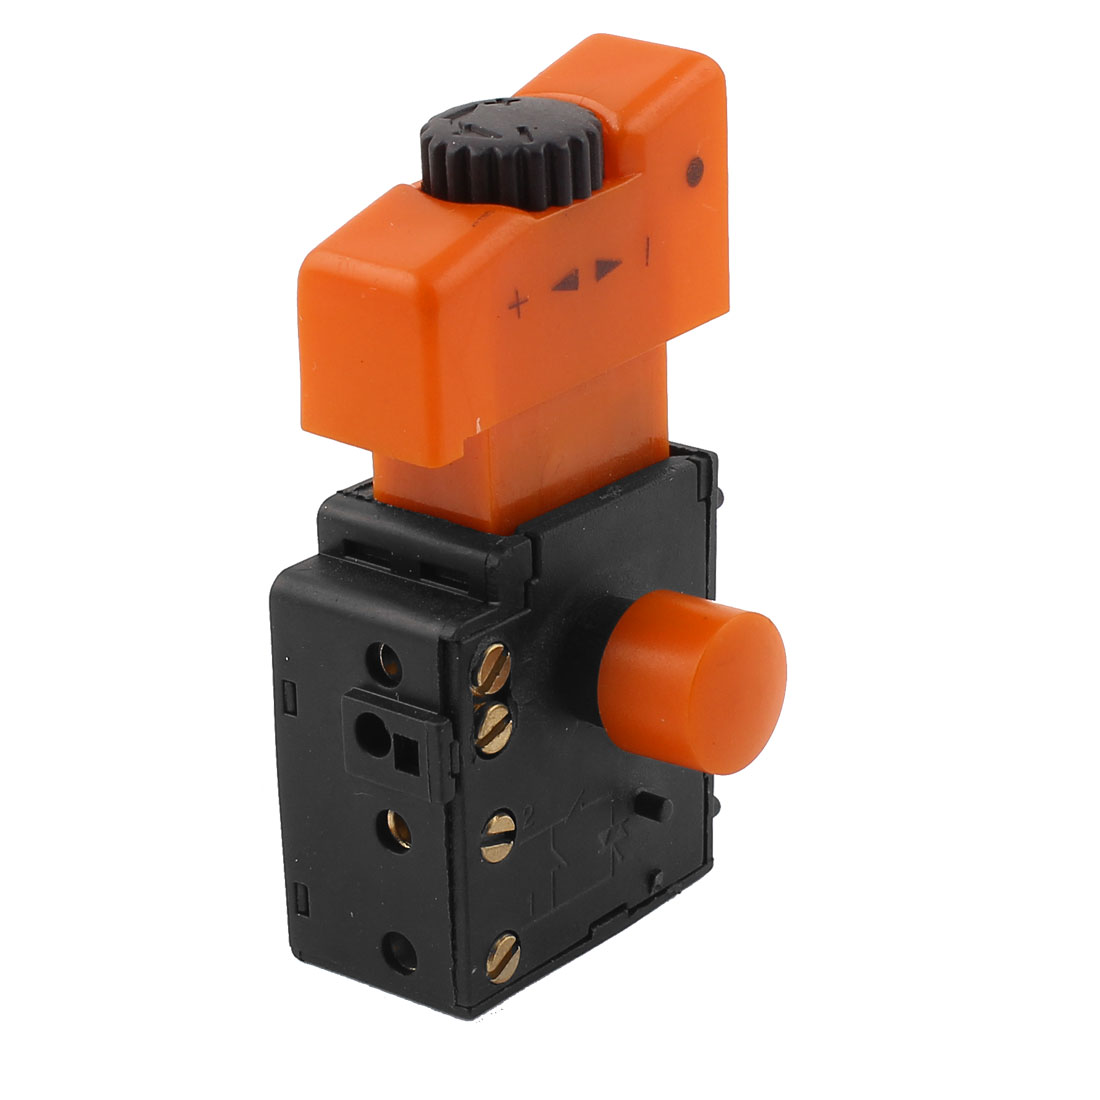 FA2-4/1BEK DPST Lock On Electric Drill Hammer Speed Control Trigger Switch